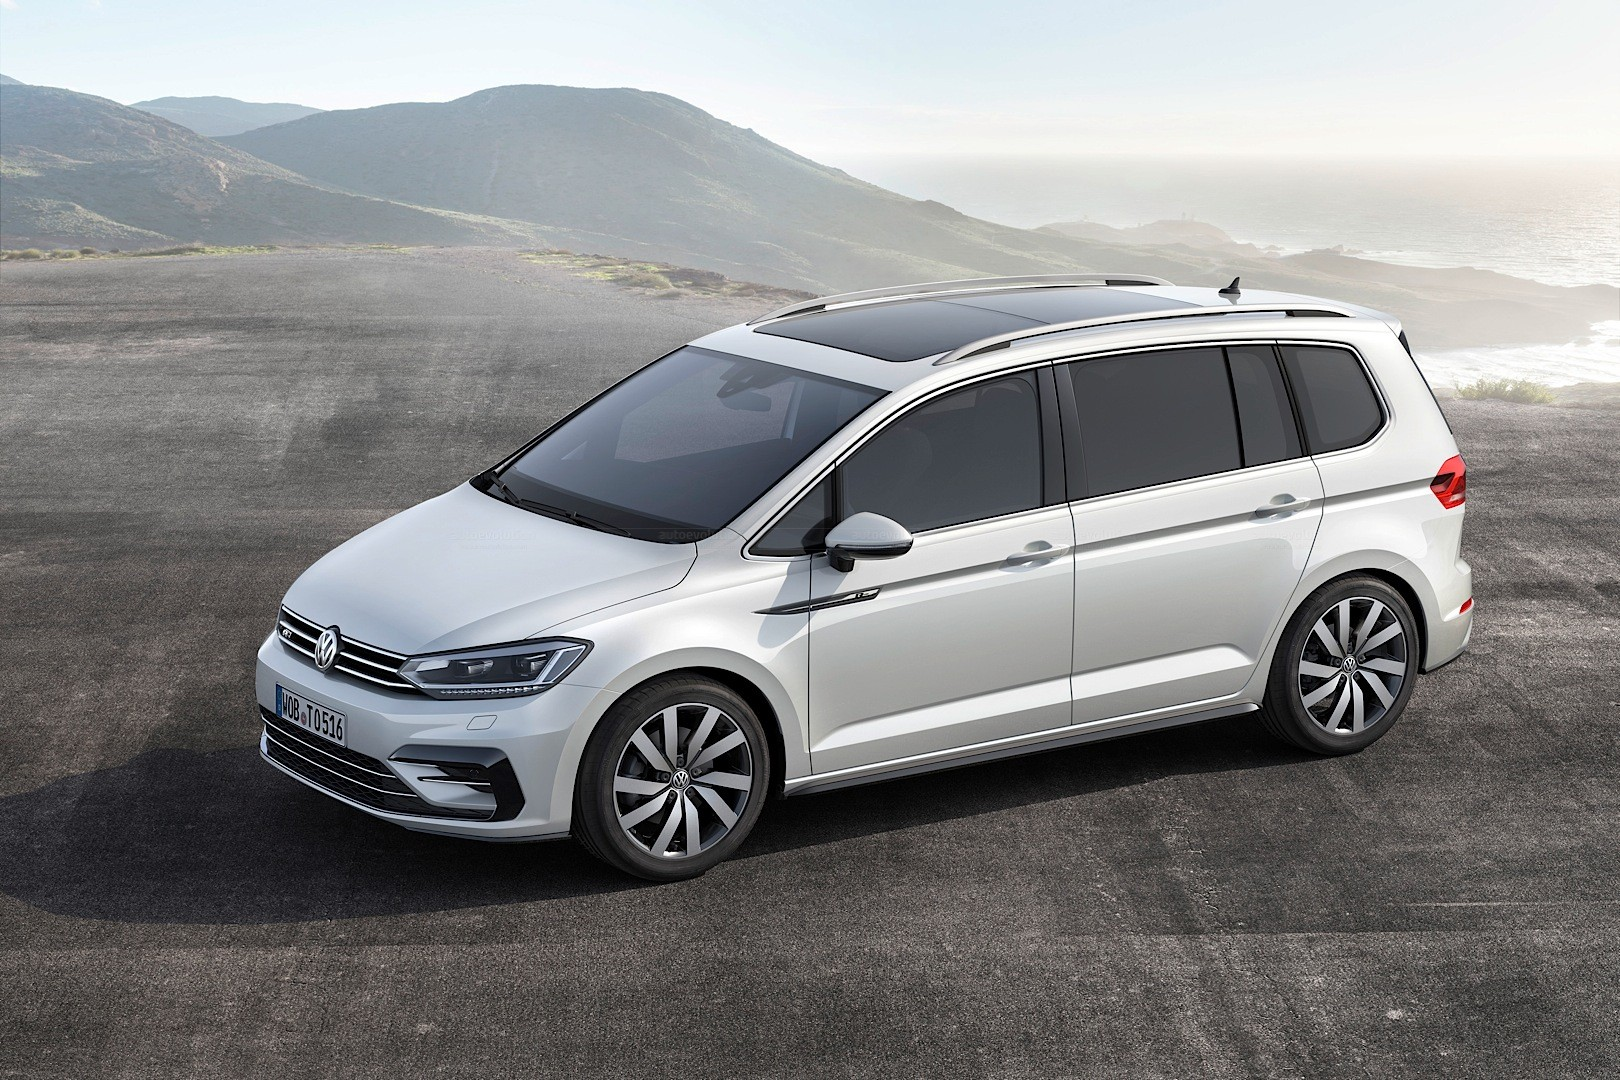 2016 volkswagen touran gets 1 8 tsi 180 hp and 2 0 tdi 190 hp engines autoevolution. Black Bedroom Furniture Sets. Home Design Ideas